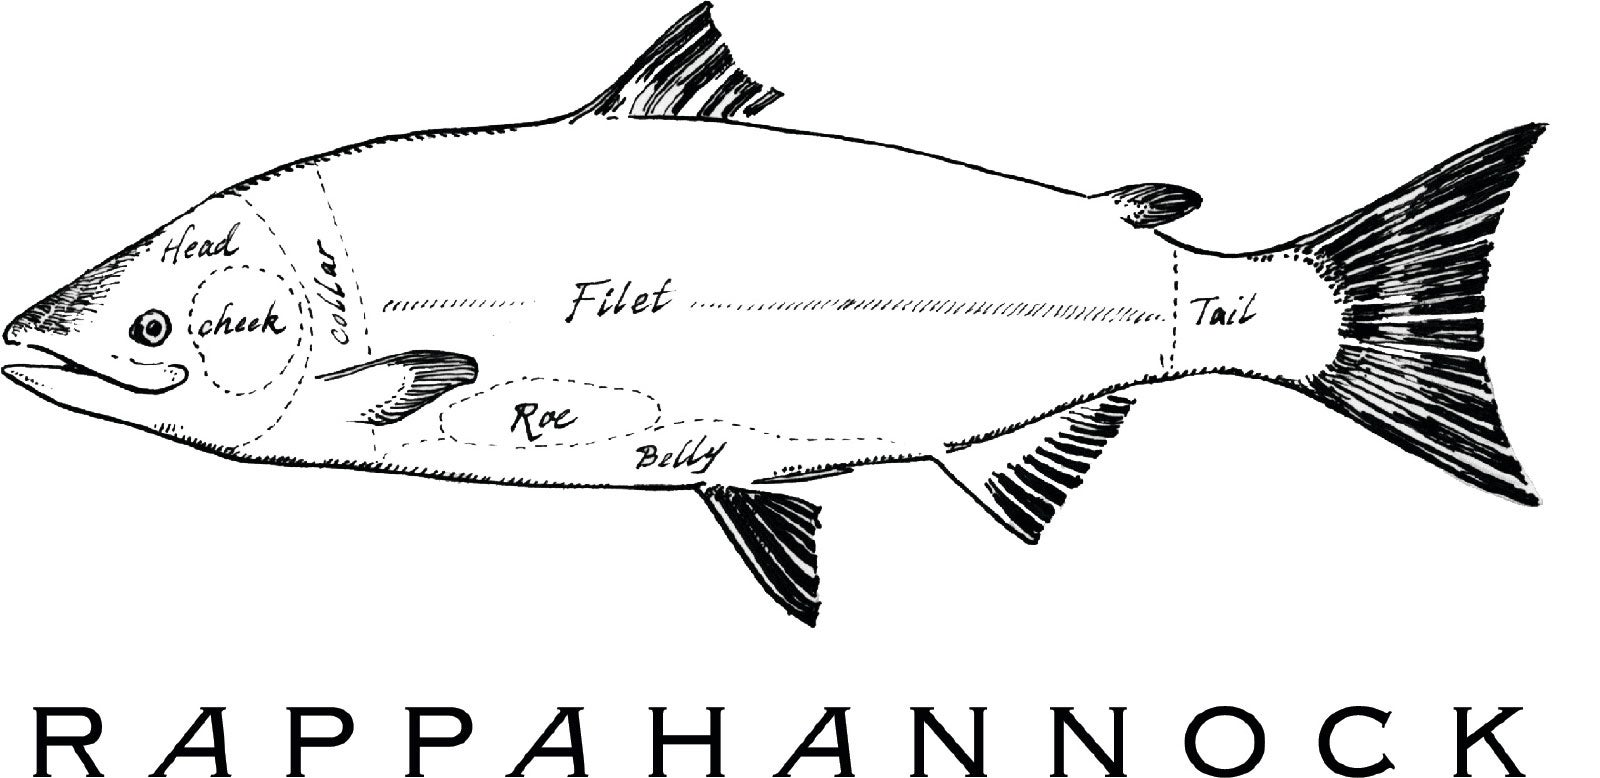 Rappahannock-black-back.jpg